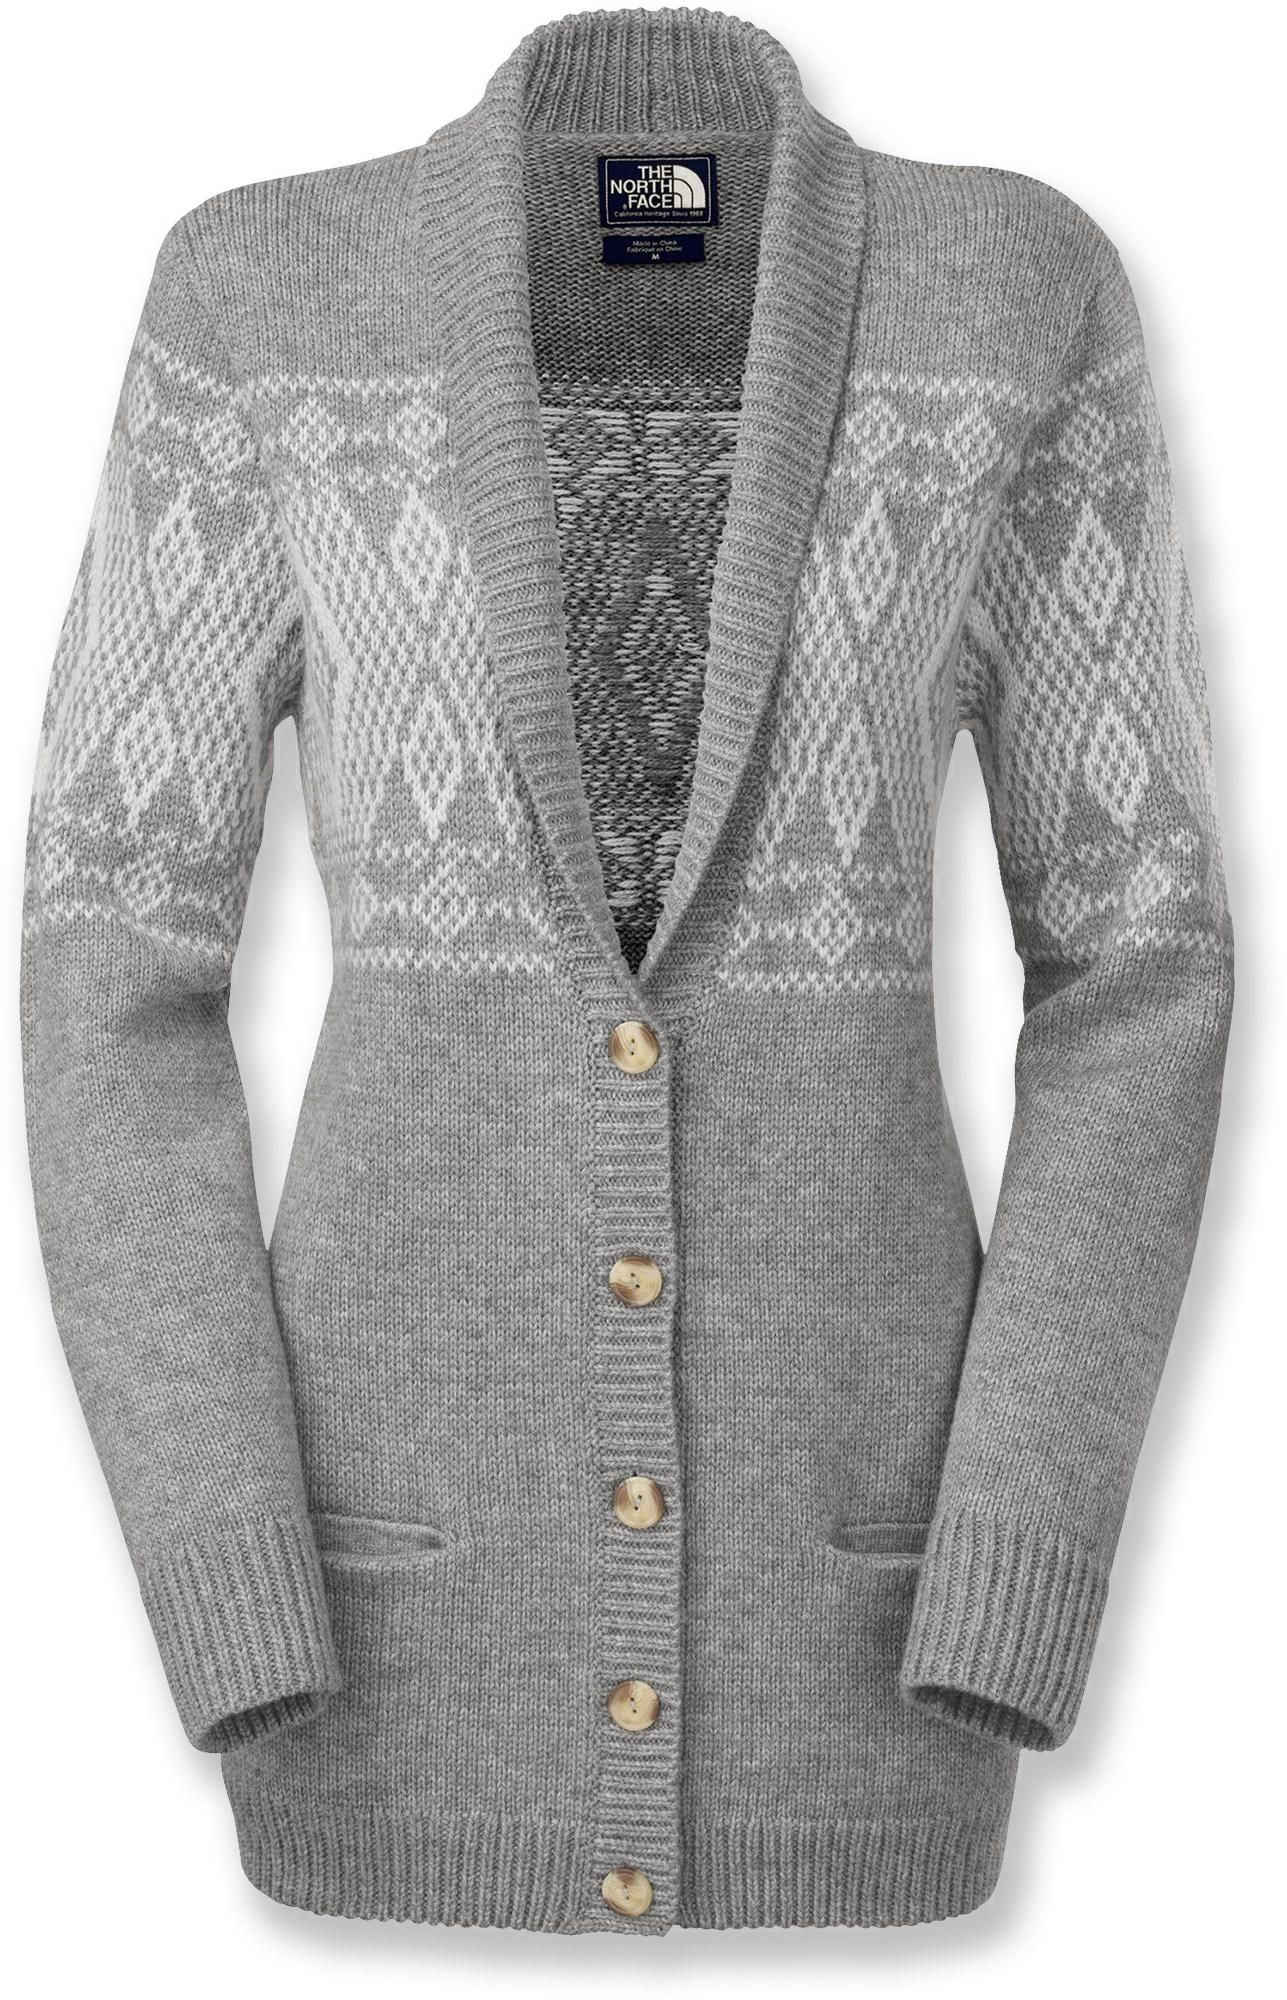 Slip on The North Face Jacquardigan women's cardigan sweater and ...